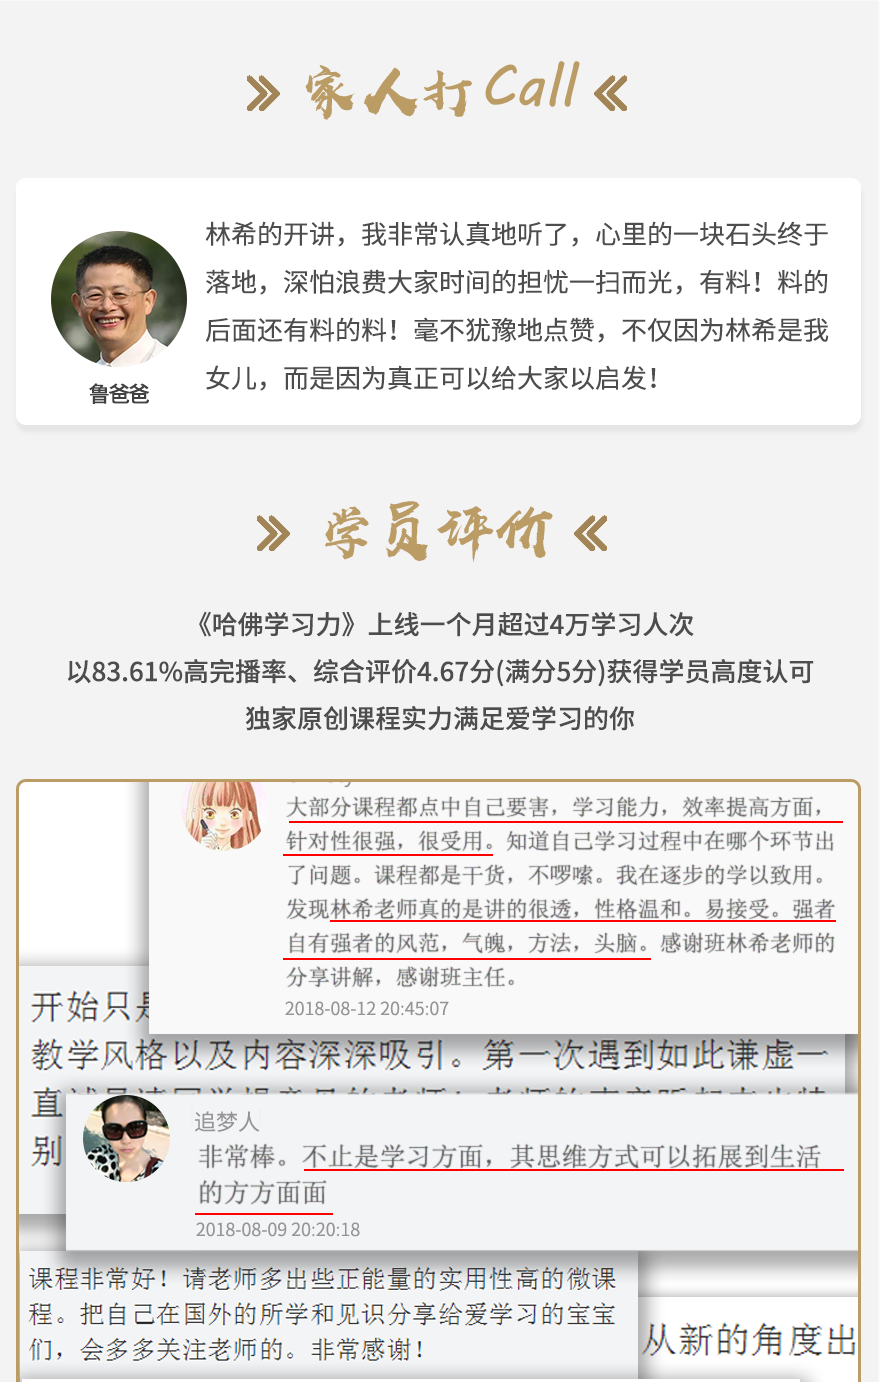 http://www.huodongxing.com/file/20160530/5092341960349/153179057925301.png